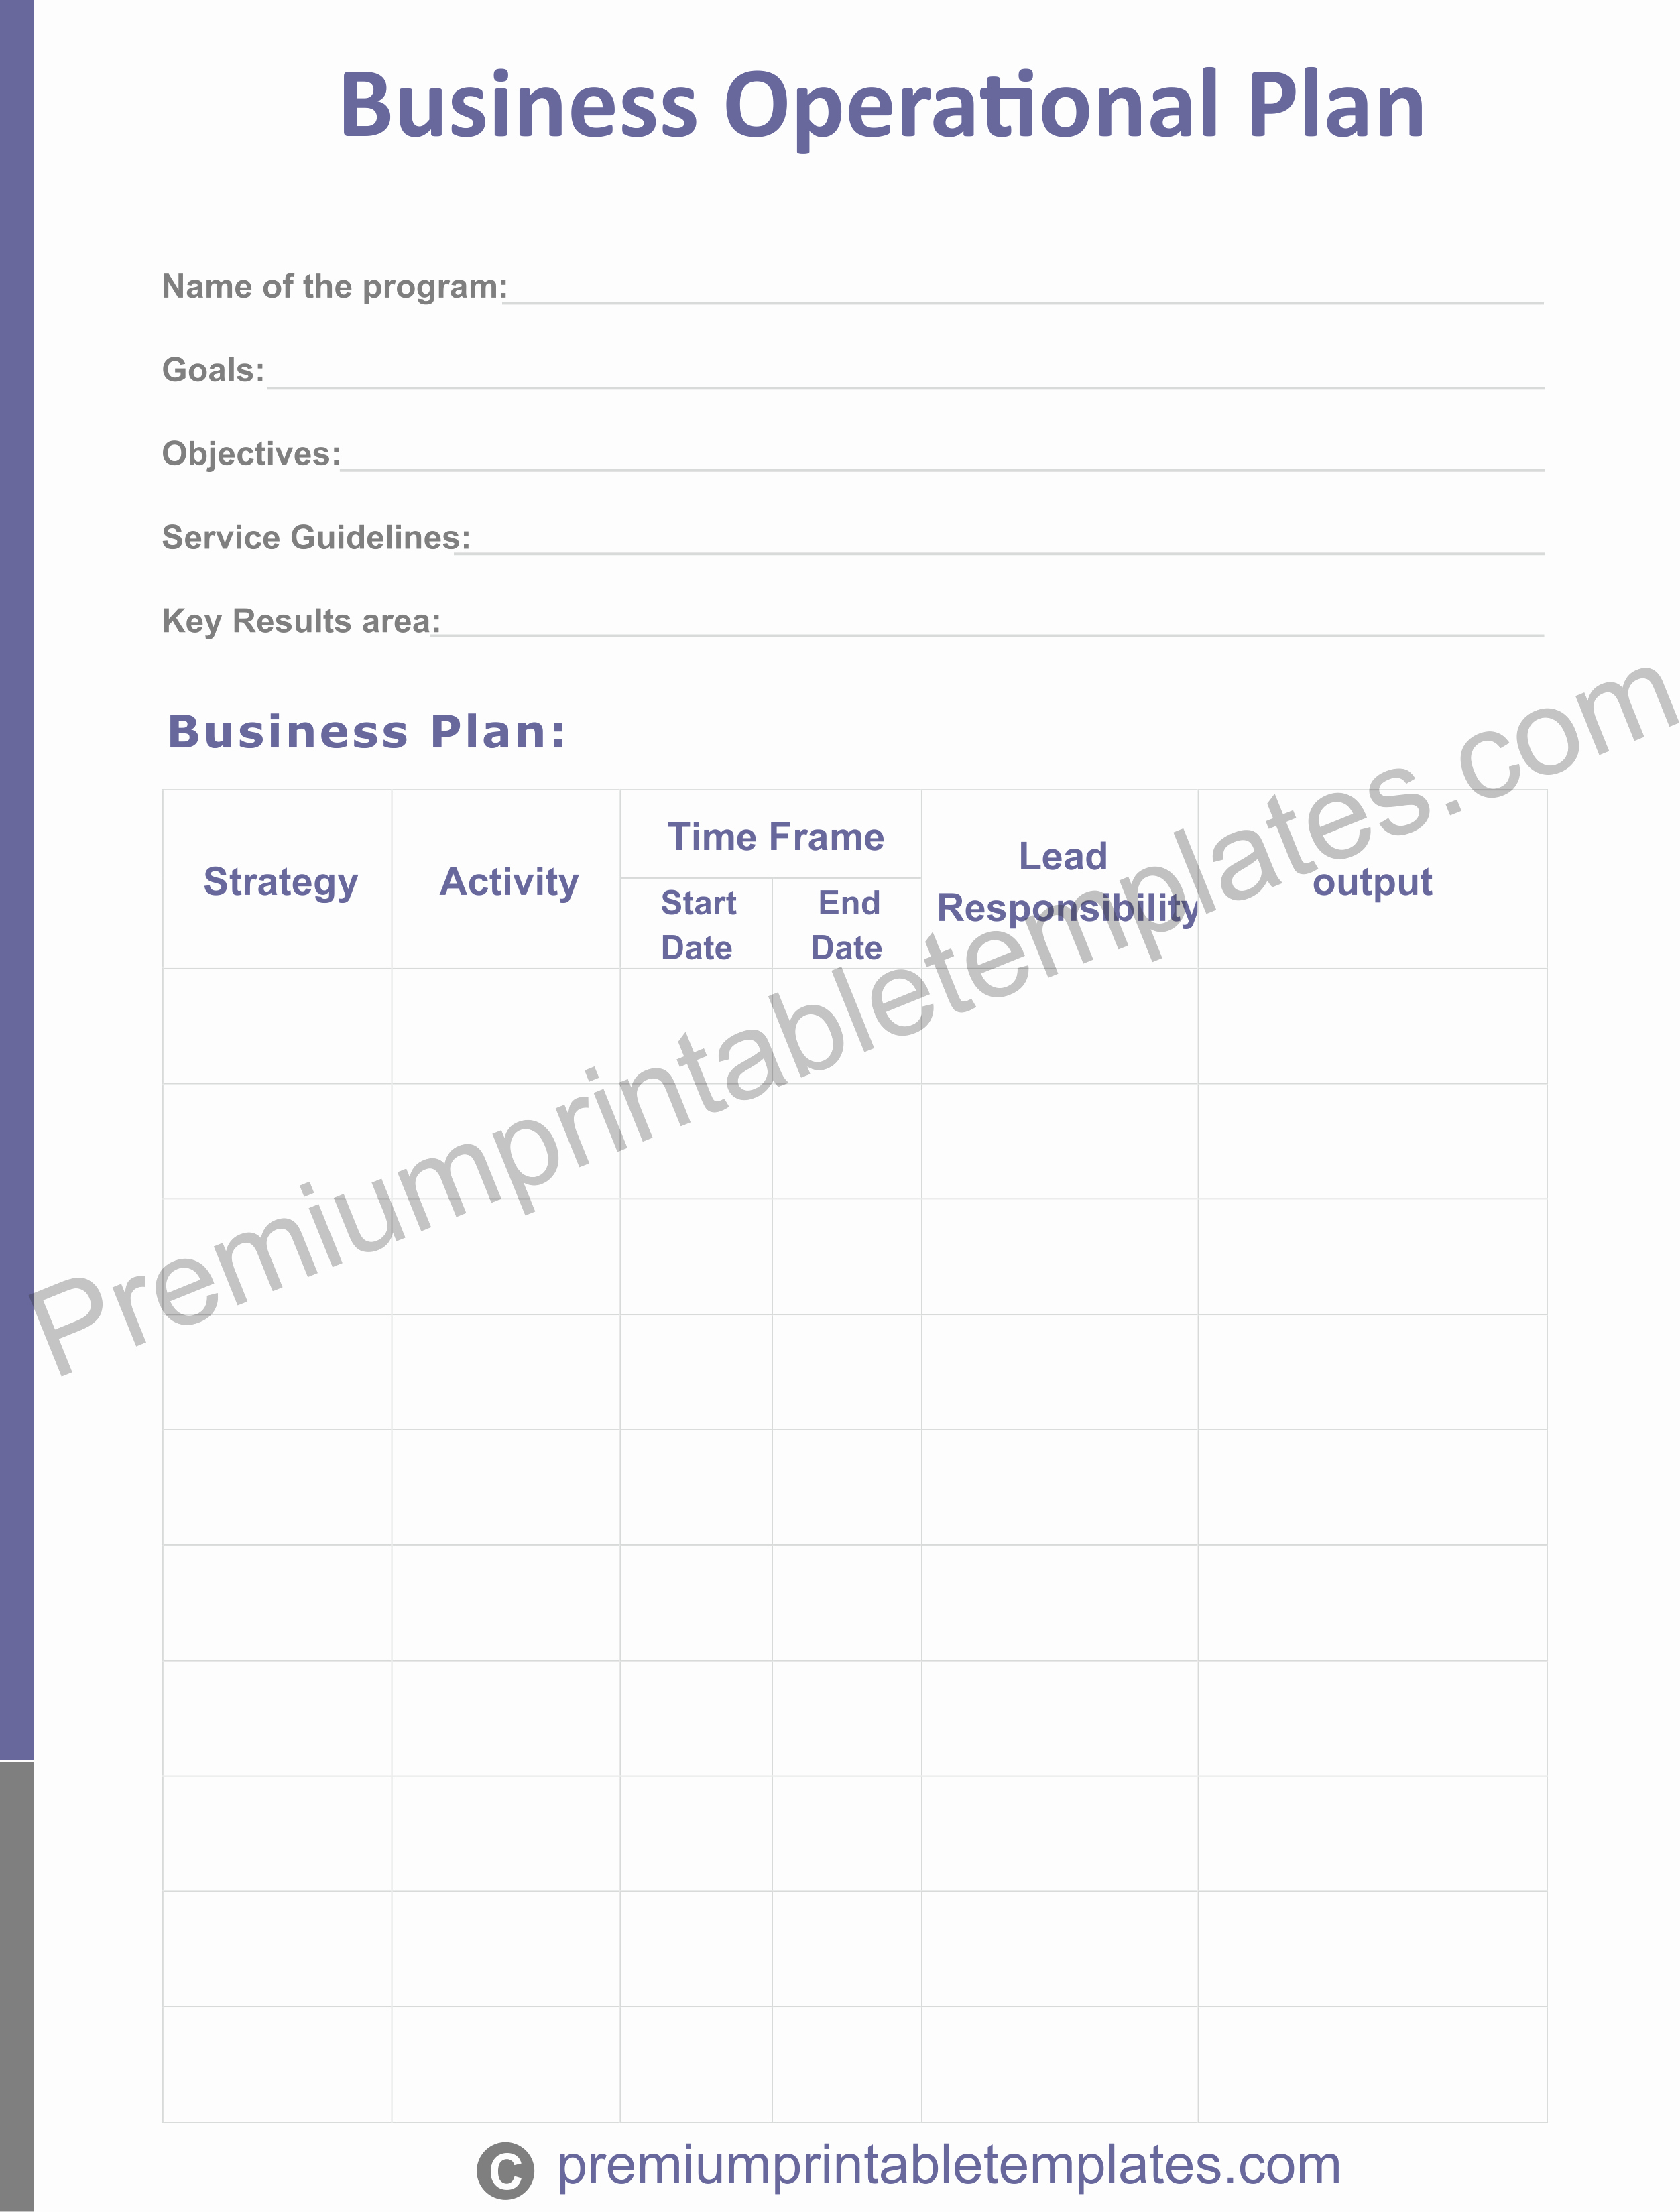 Business Operational Plan Template Inspirational Business Operational Plan Templates – Premium Printable